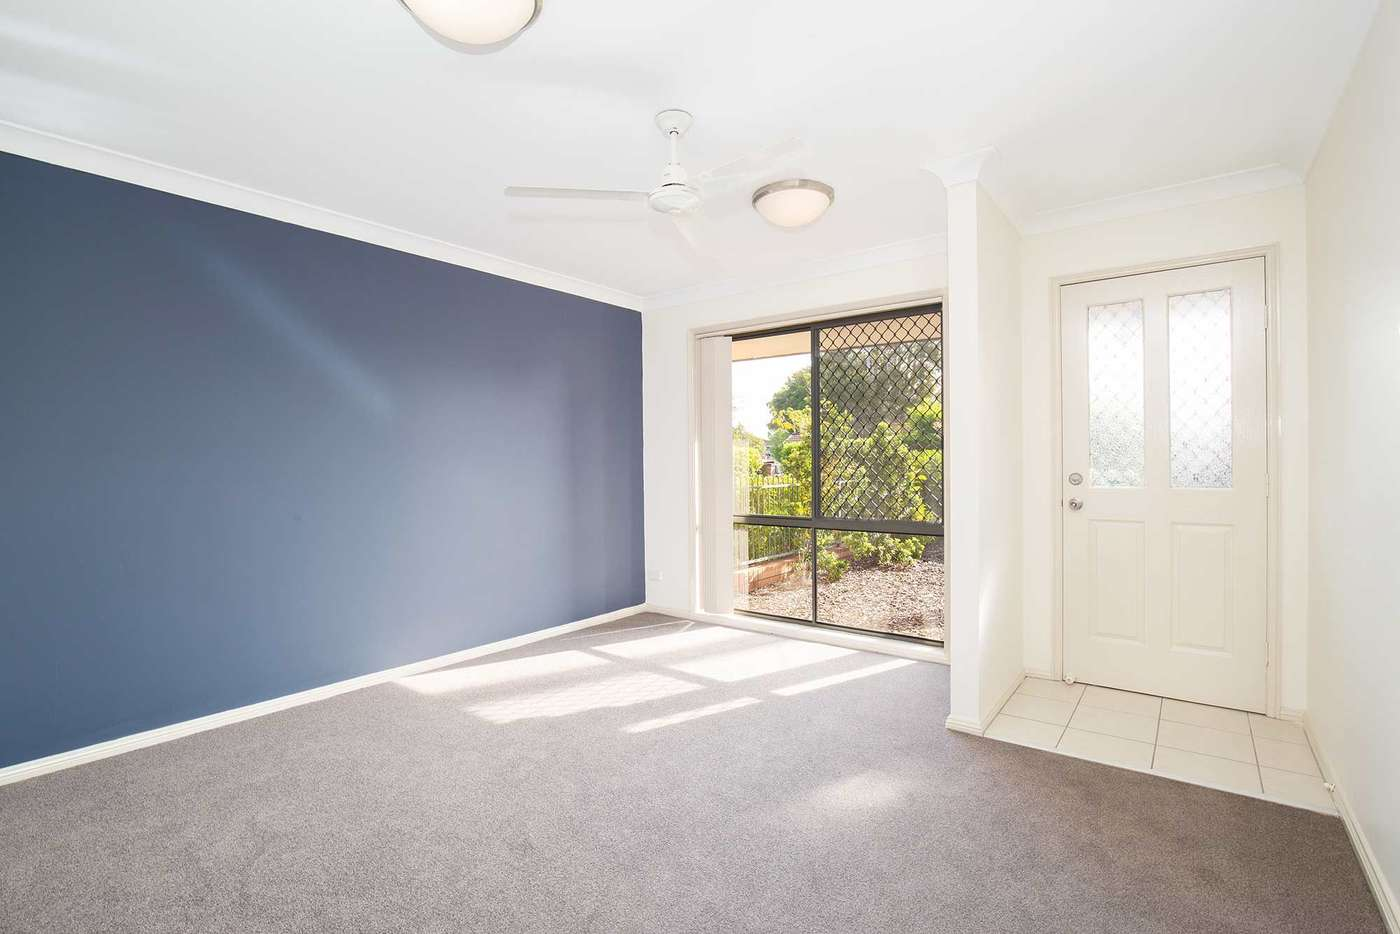 Sixth view of Homely townhouse listing, 325 Brunker Road, Adamstown NSW 2289